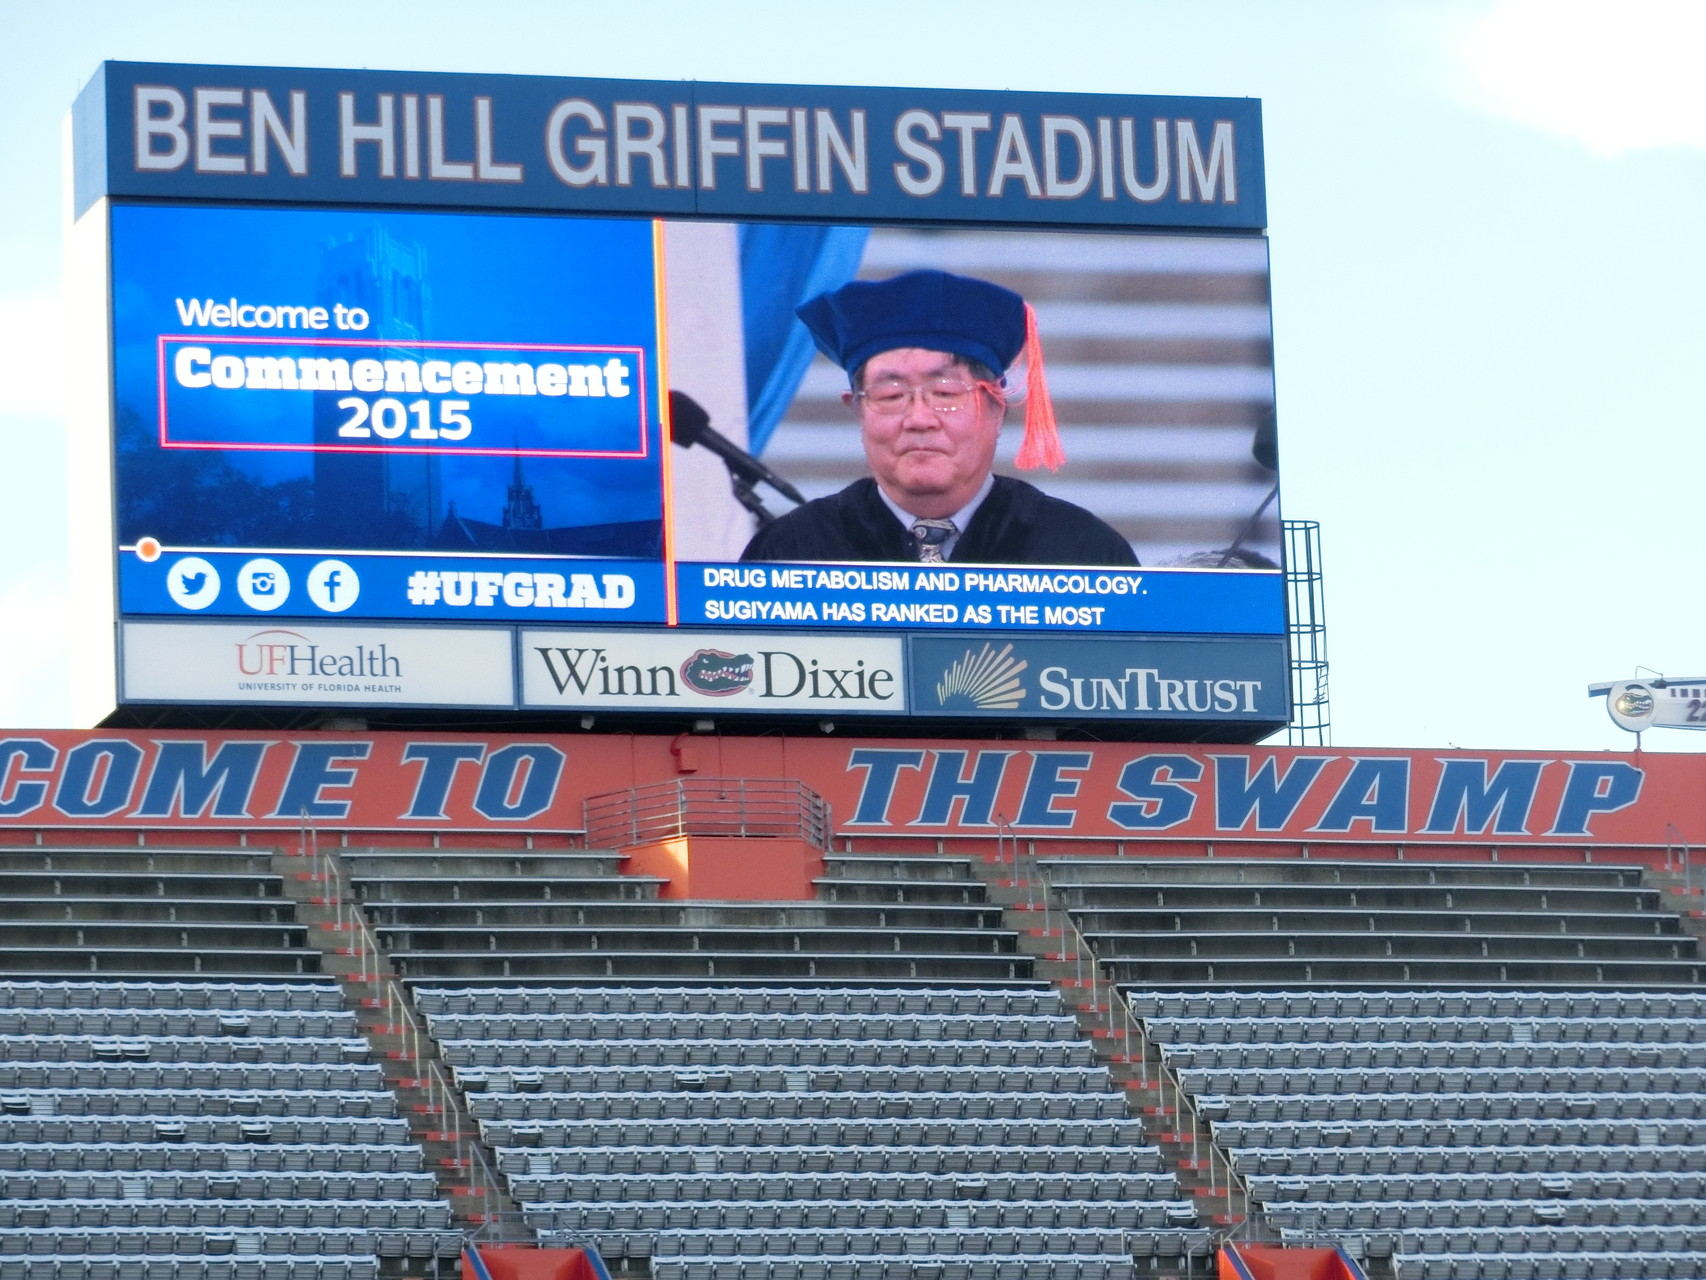 10万人収容できるBen Hill Griffin Stadium